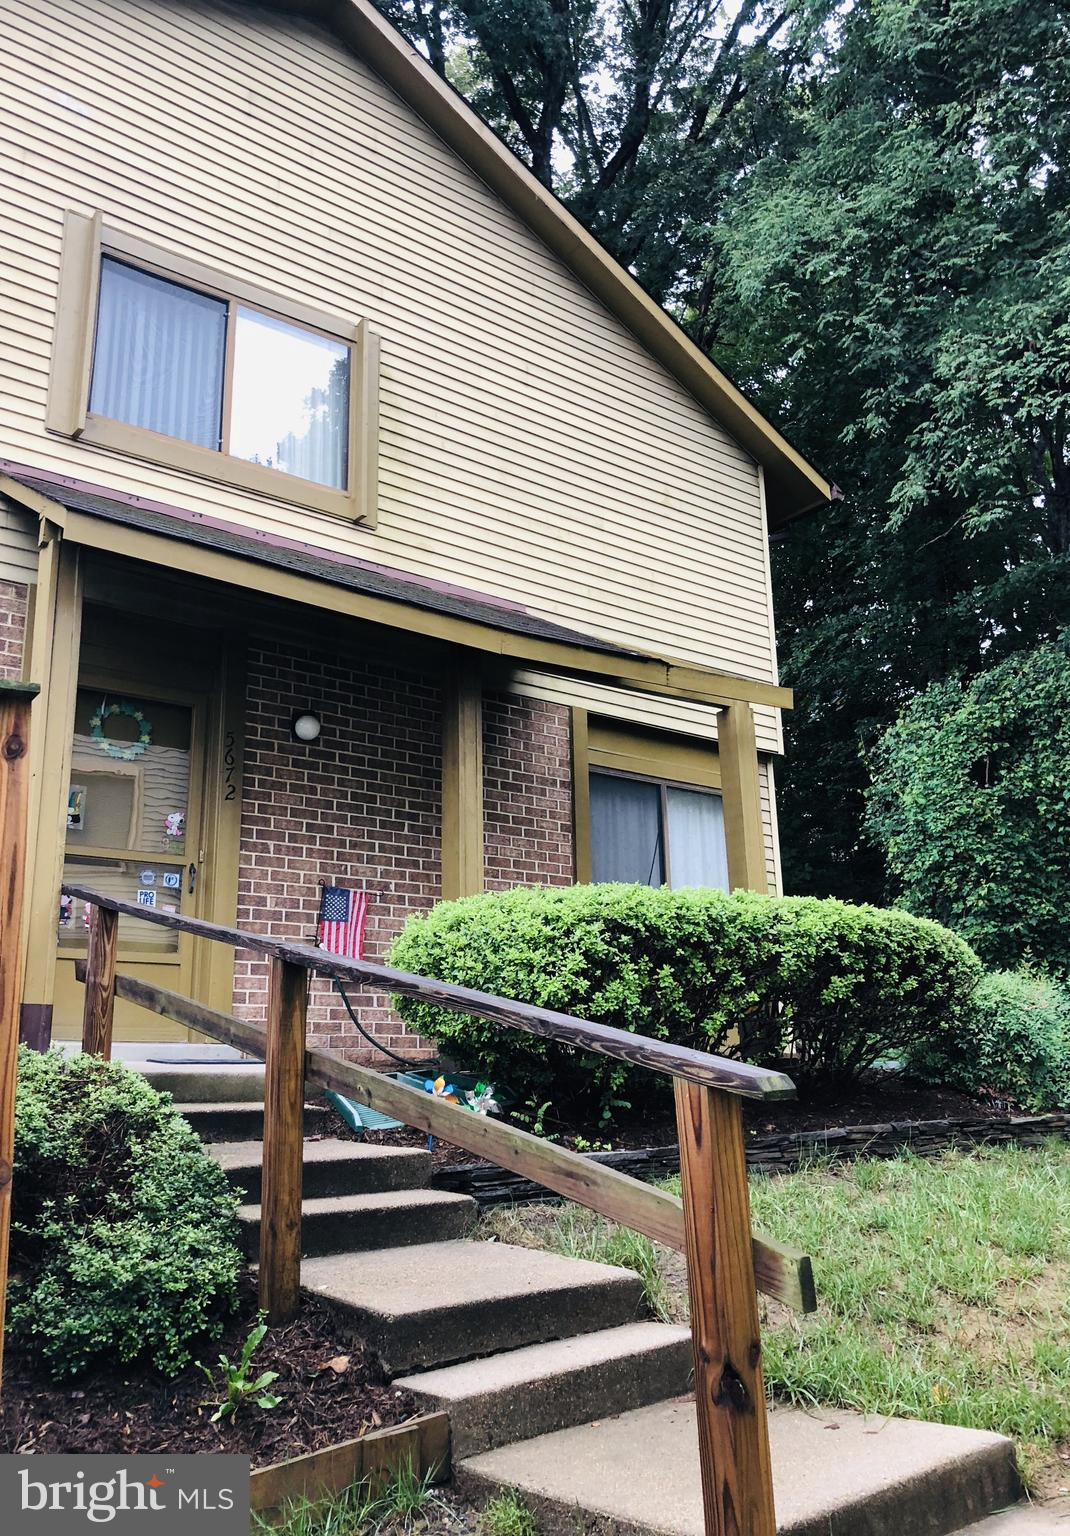 HUGE OPPORTUNITY to OWN in BURKE- PRICED BELOW APPRAISED VALUE!!! Hardwood floors, new refrigerator, updated kitchen & sliding glass door. Private fenced in brick patio overlooks to greenery. Close to trails, tennis courts, pools, community center & more. Near shopping, restaurants & Burke Centre Parkway. Short drive to EagleBank Arena & Fairfax County Parkway.